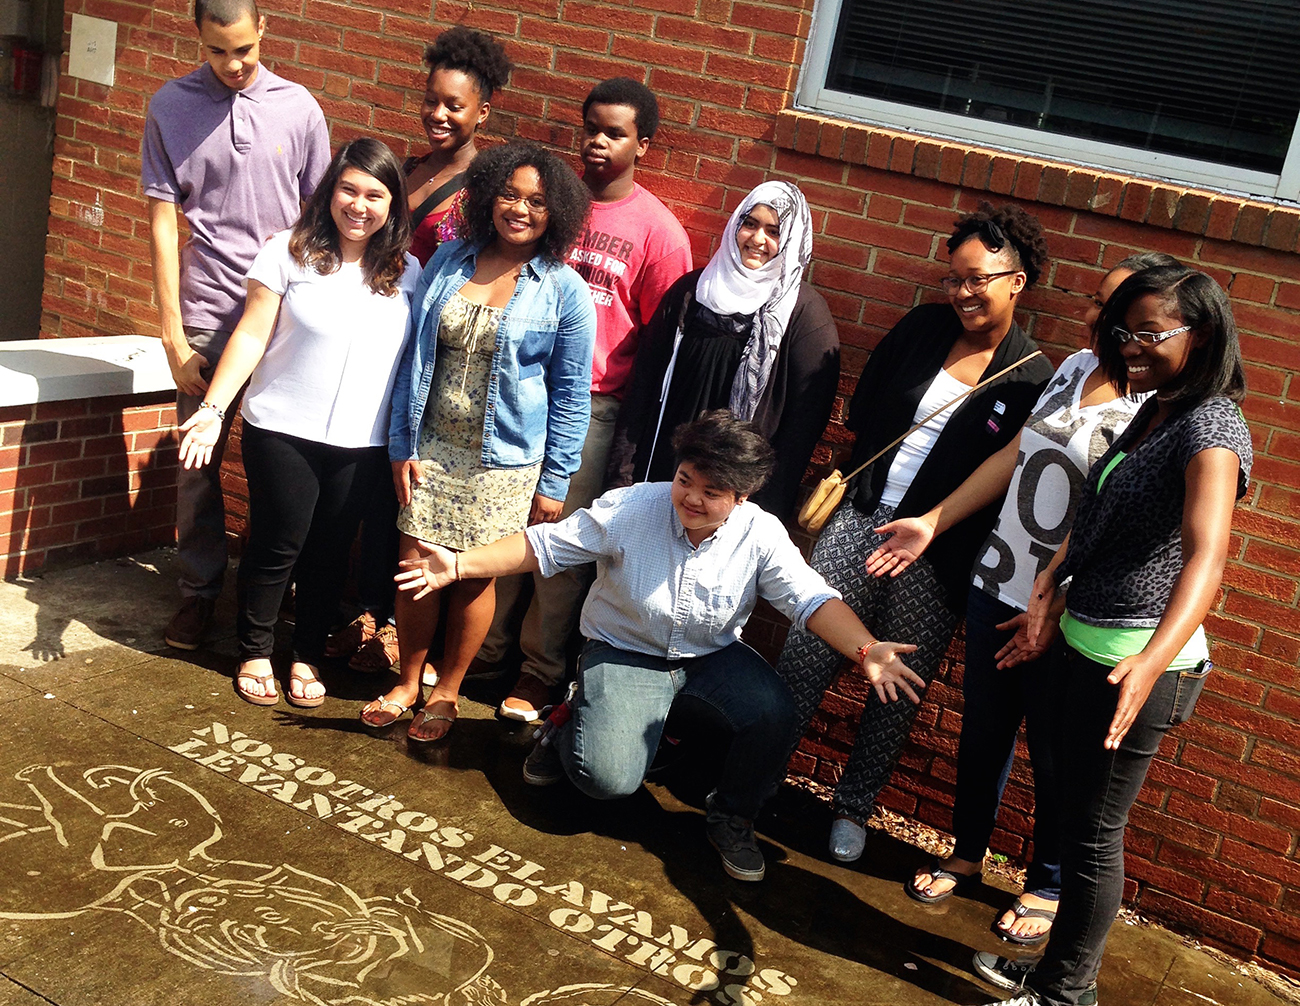 Positivity and partnership: #thesavageway and West Charlotte High School IB art program spread positivity